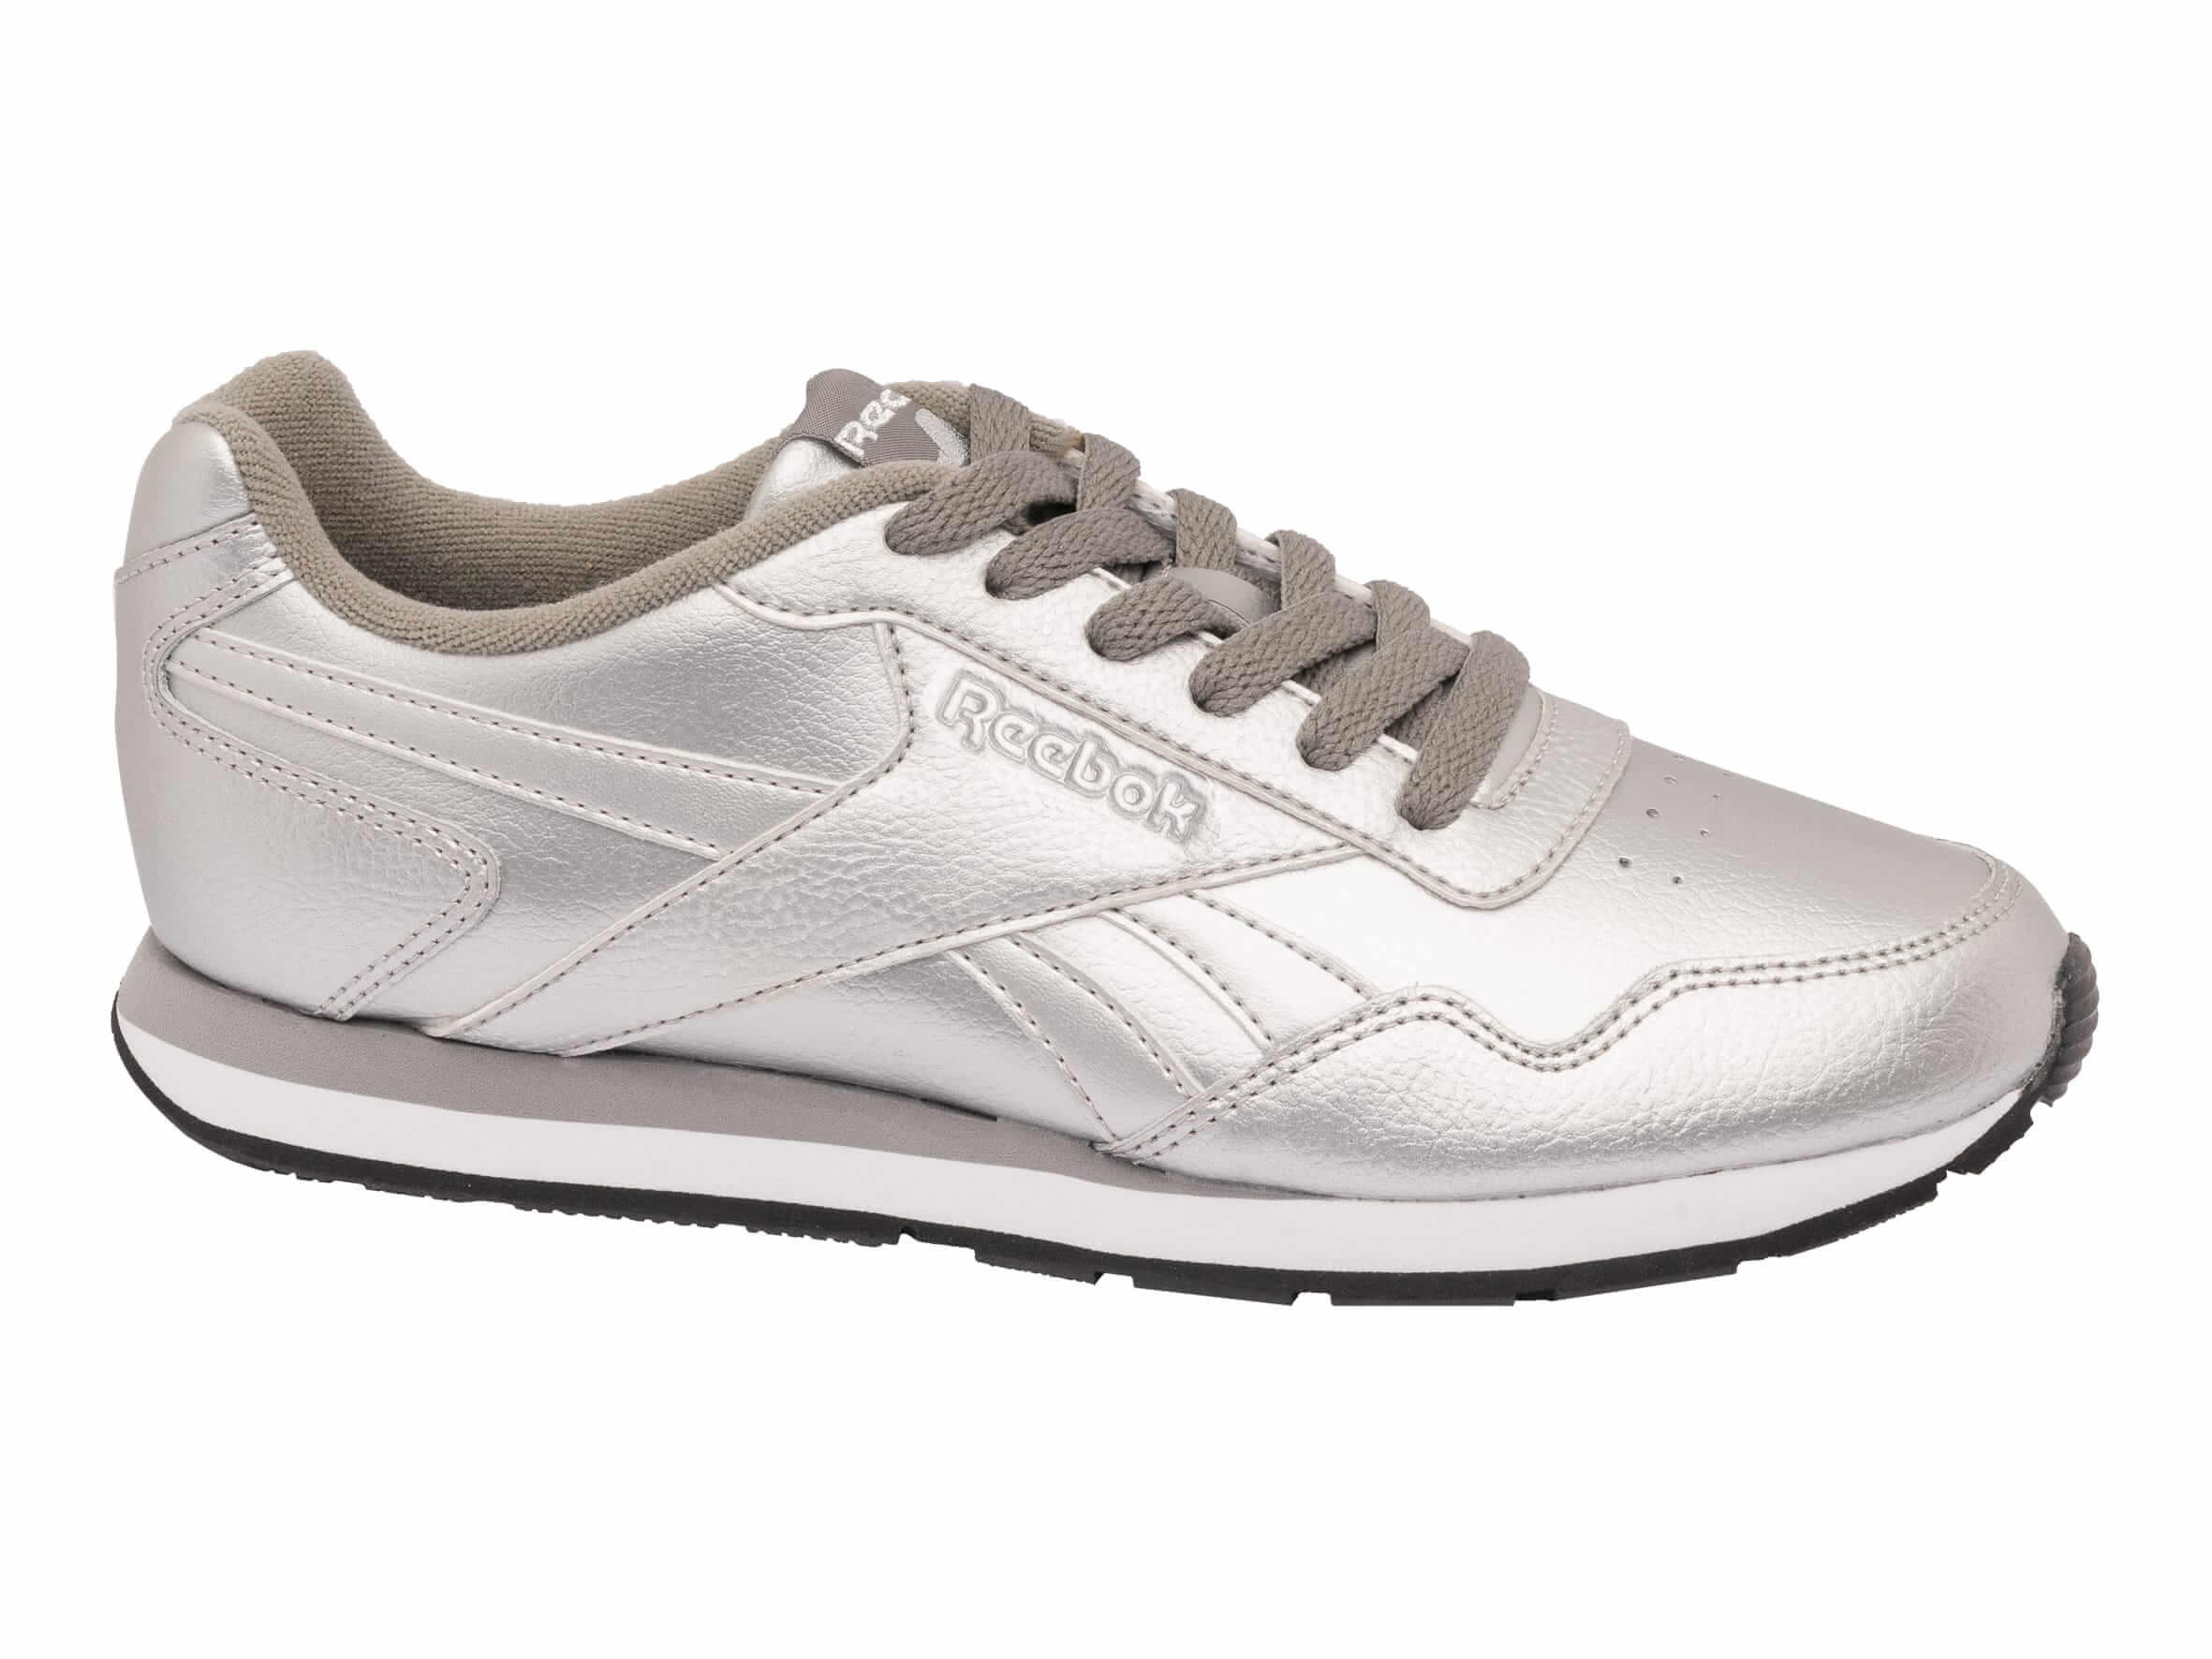 50d29d5075514 Give your weekend look a lift with a pair of retro Reebok silver metallic  trainers. Channelling the 90s trend and the metallic trend in one easy  step, ...